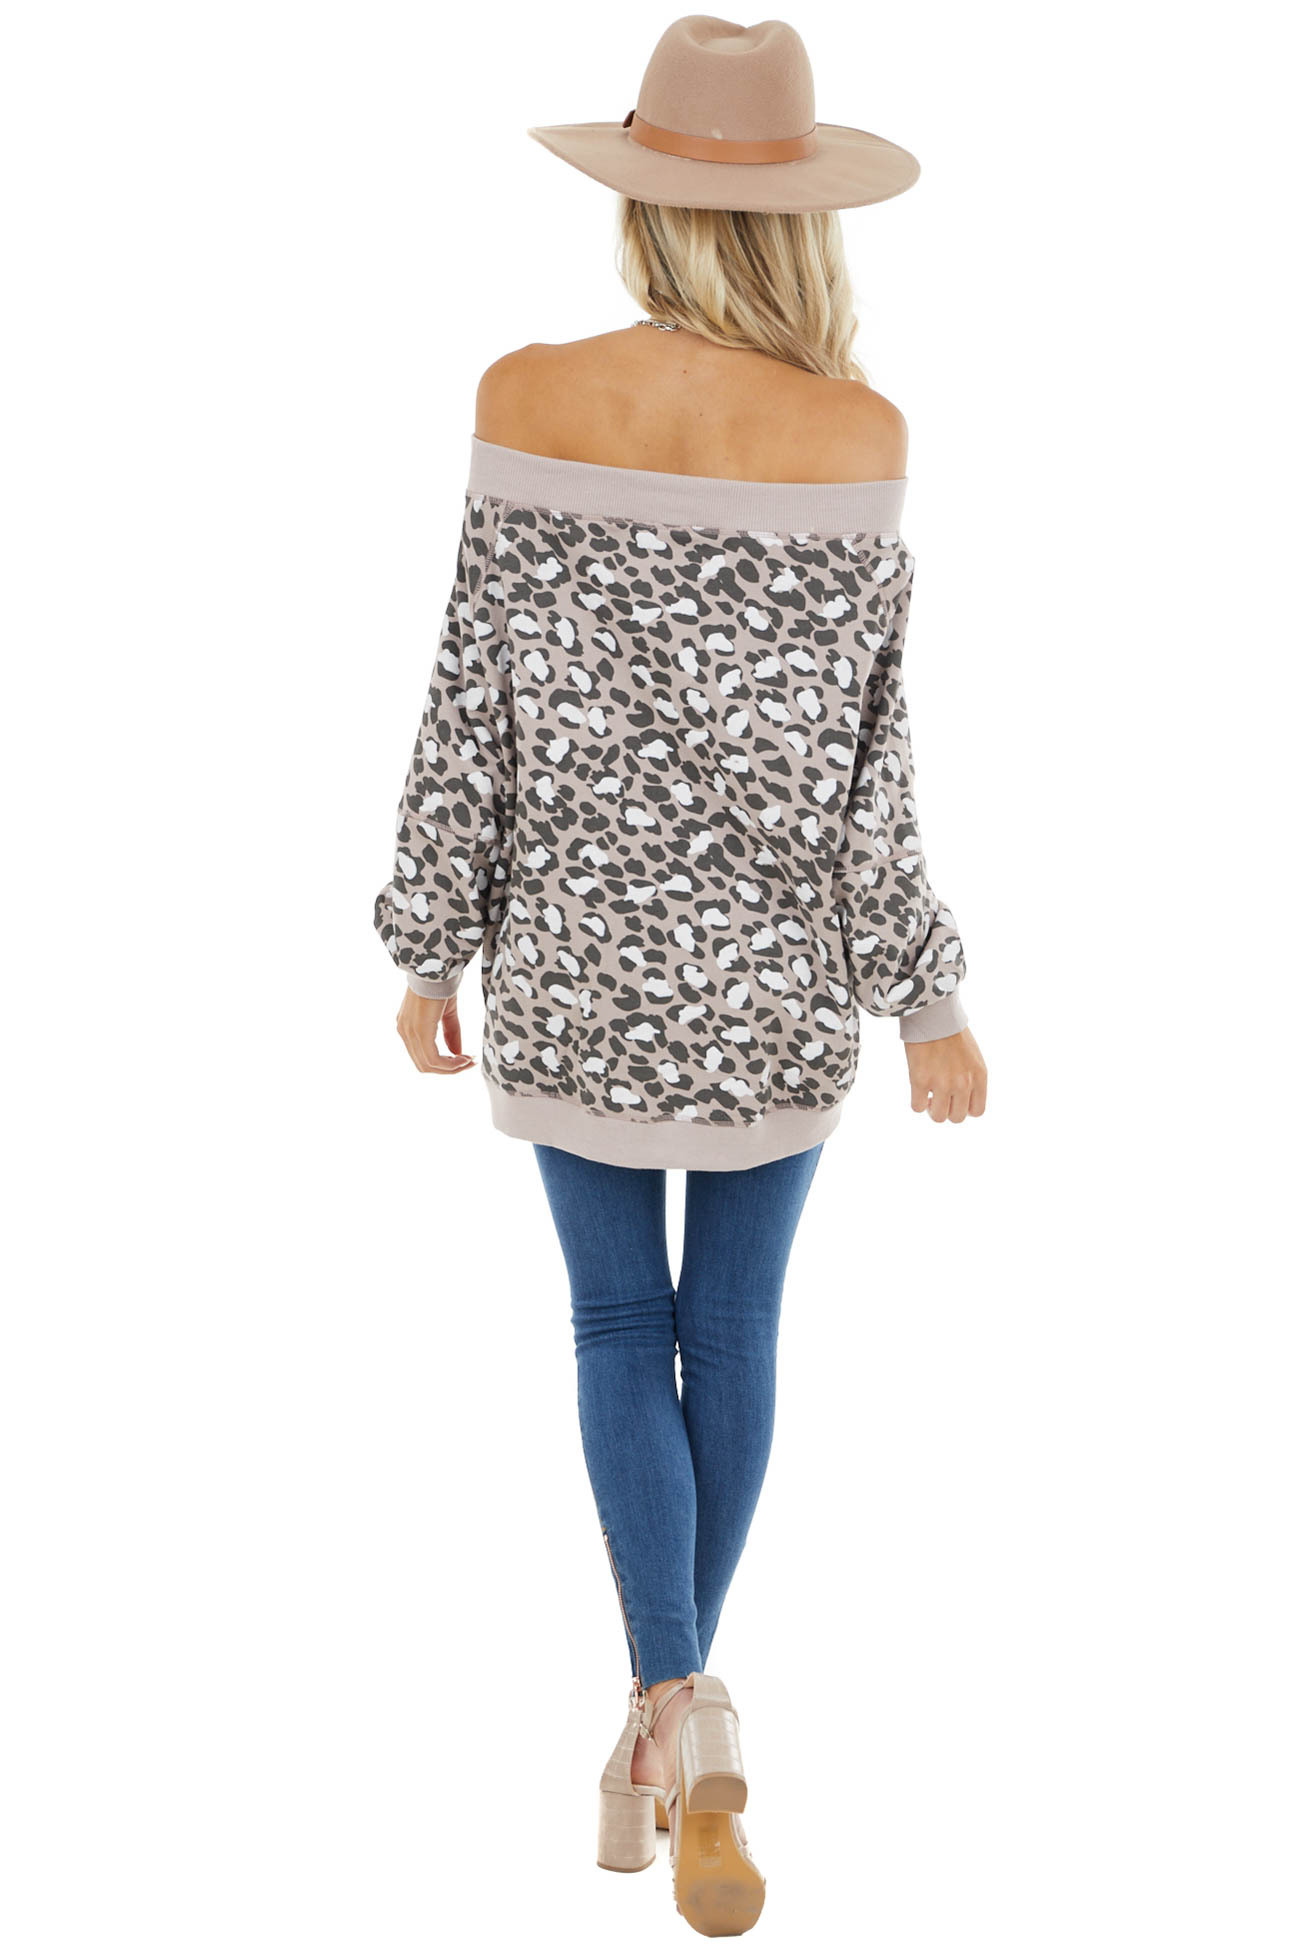 Dusty Rose and Cocoa Leopard Print Off Shoulder Sweatshirt